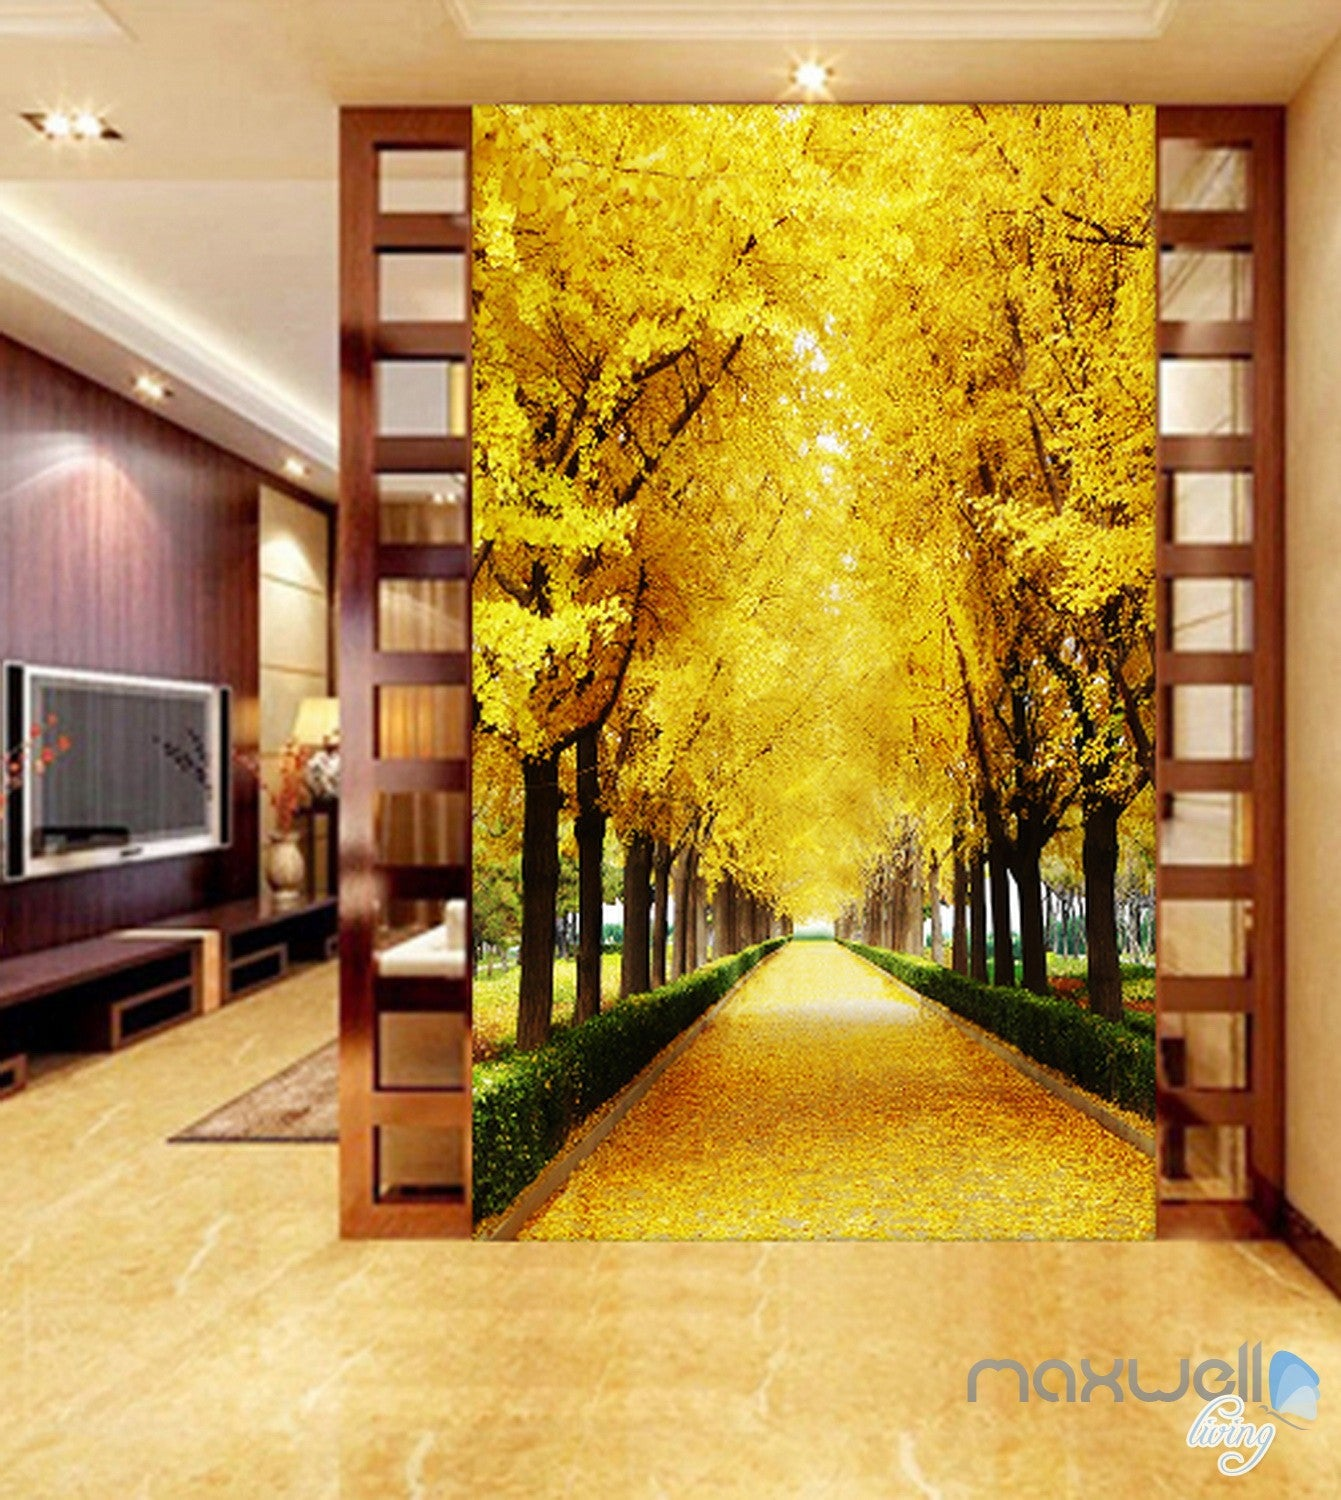 3D Autumn Tree Yellow Leaves Corridor Entrance Wall Mural Decals Art ...